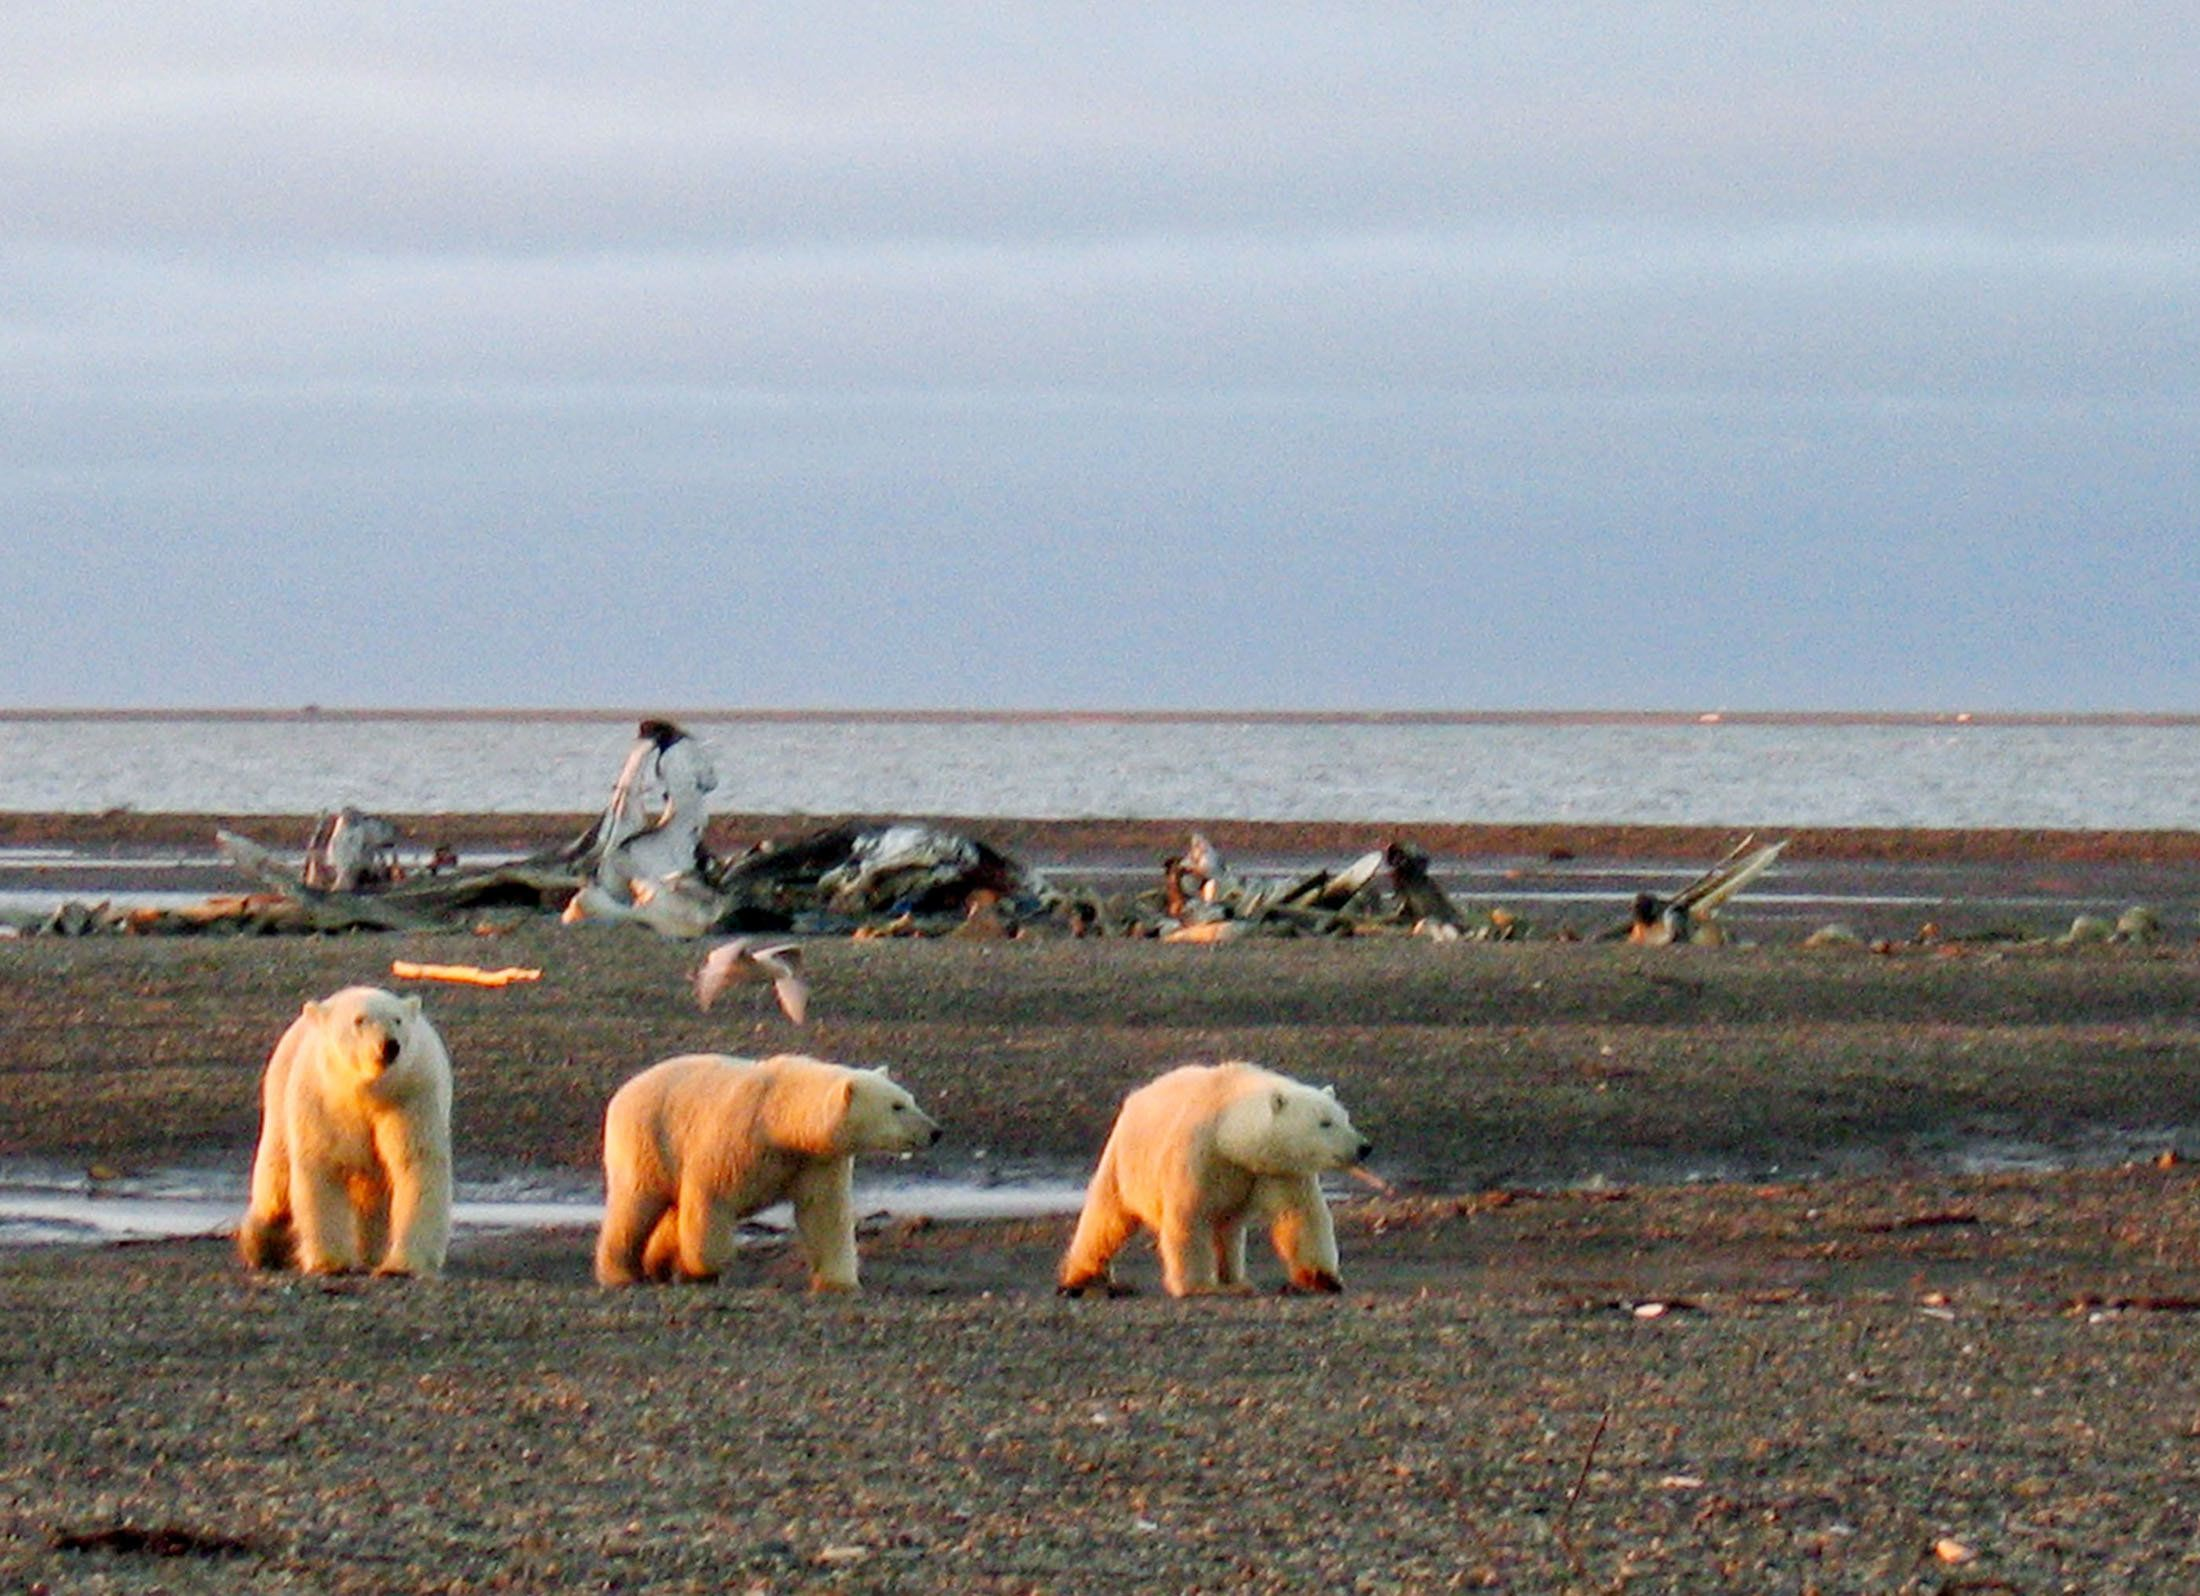 Three polar bears are seen on the Beaufort Sea coast within the 1002 Area of the Arctic National Wildlife Refuge in this undated handout photo provided by the U.S. Fish and Wildlife Service Alaska Image Library on December 21, 2005. U.S. Senate Democrats succeeded in blocking, for now, a Republican plan to allow oil drilling in the 1002 area of the Arctic National Wildlife Refuge (ANWR) as part of a massive $453 billion war-time military spending bill. EDITORIAL USE ONLY REUTERS/HANDOUT/U.S. Fish and Wildlife Service Alaska Image Library